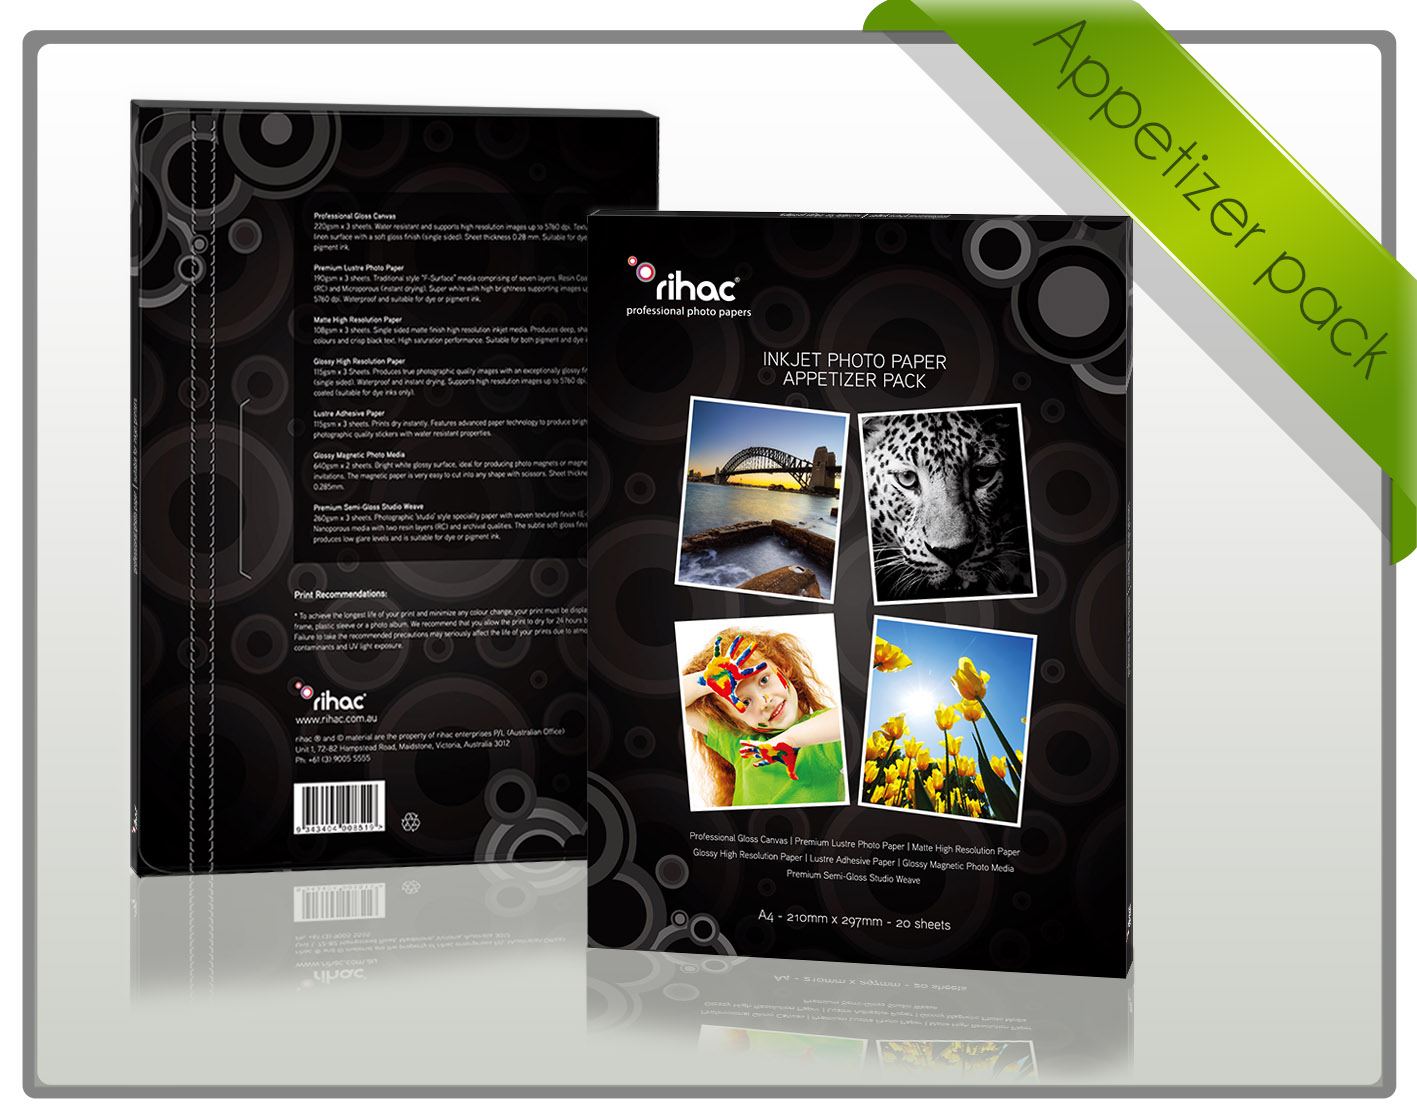 Inkjet Photo Paper Appetizer pack